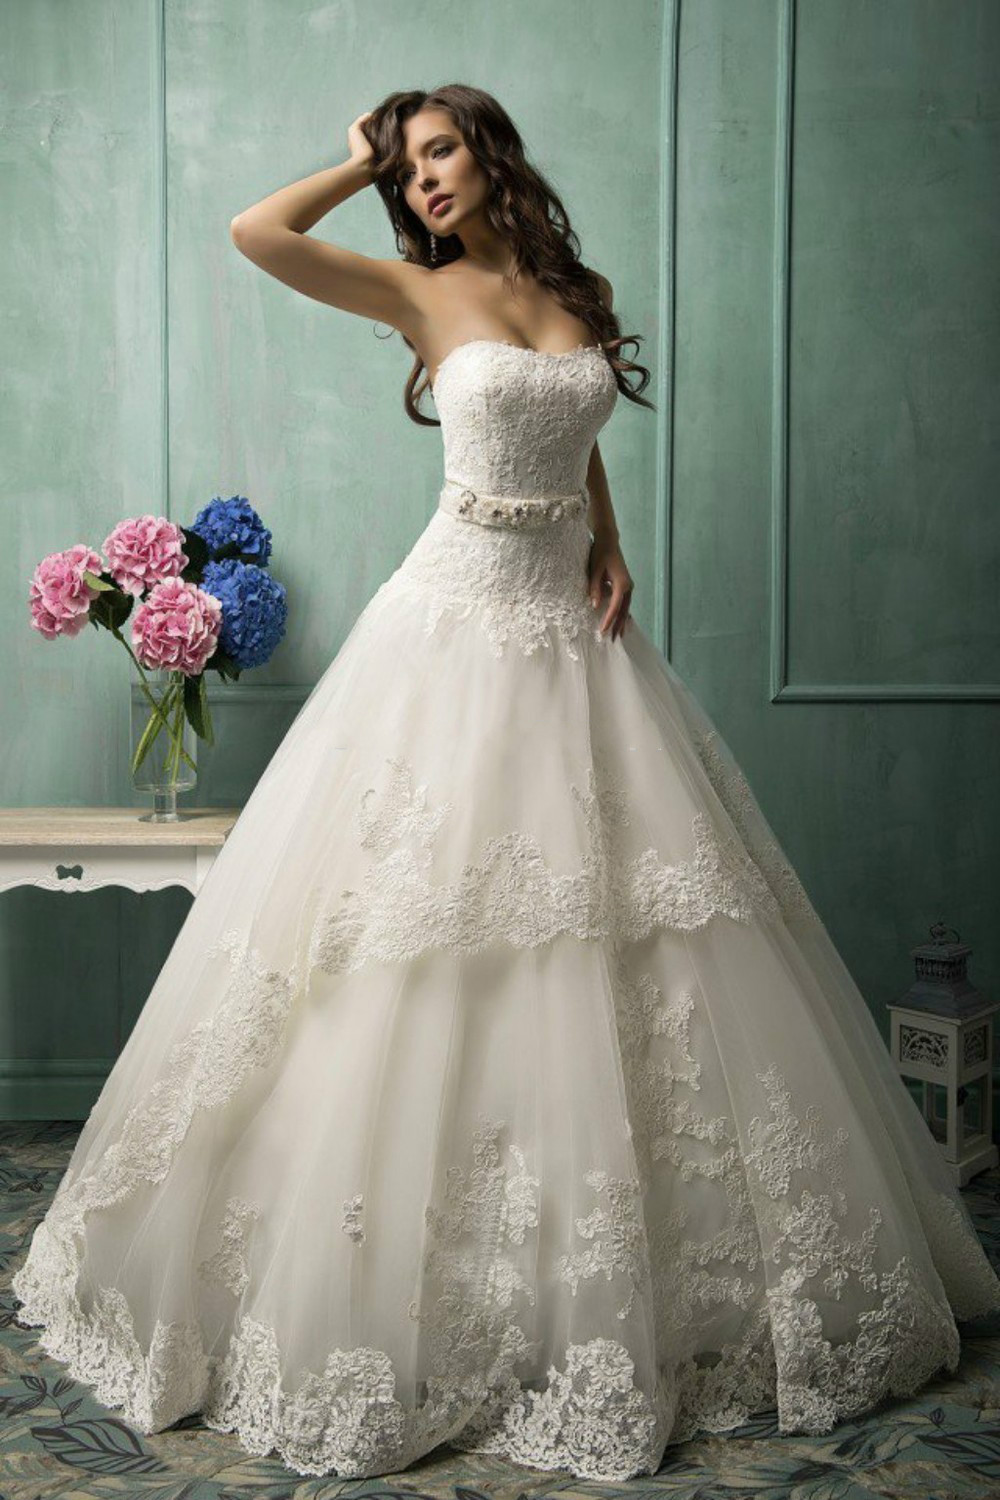 Alluring Princess Amelia Vestido De Novia Lace 2018 Lace up Robe De Mariage Bridal party prom Gown mother of the bride dresses in Mother of the Bride Dresses from Weddings Events